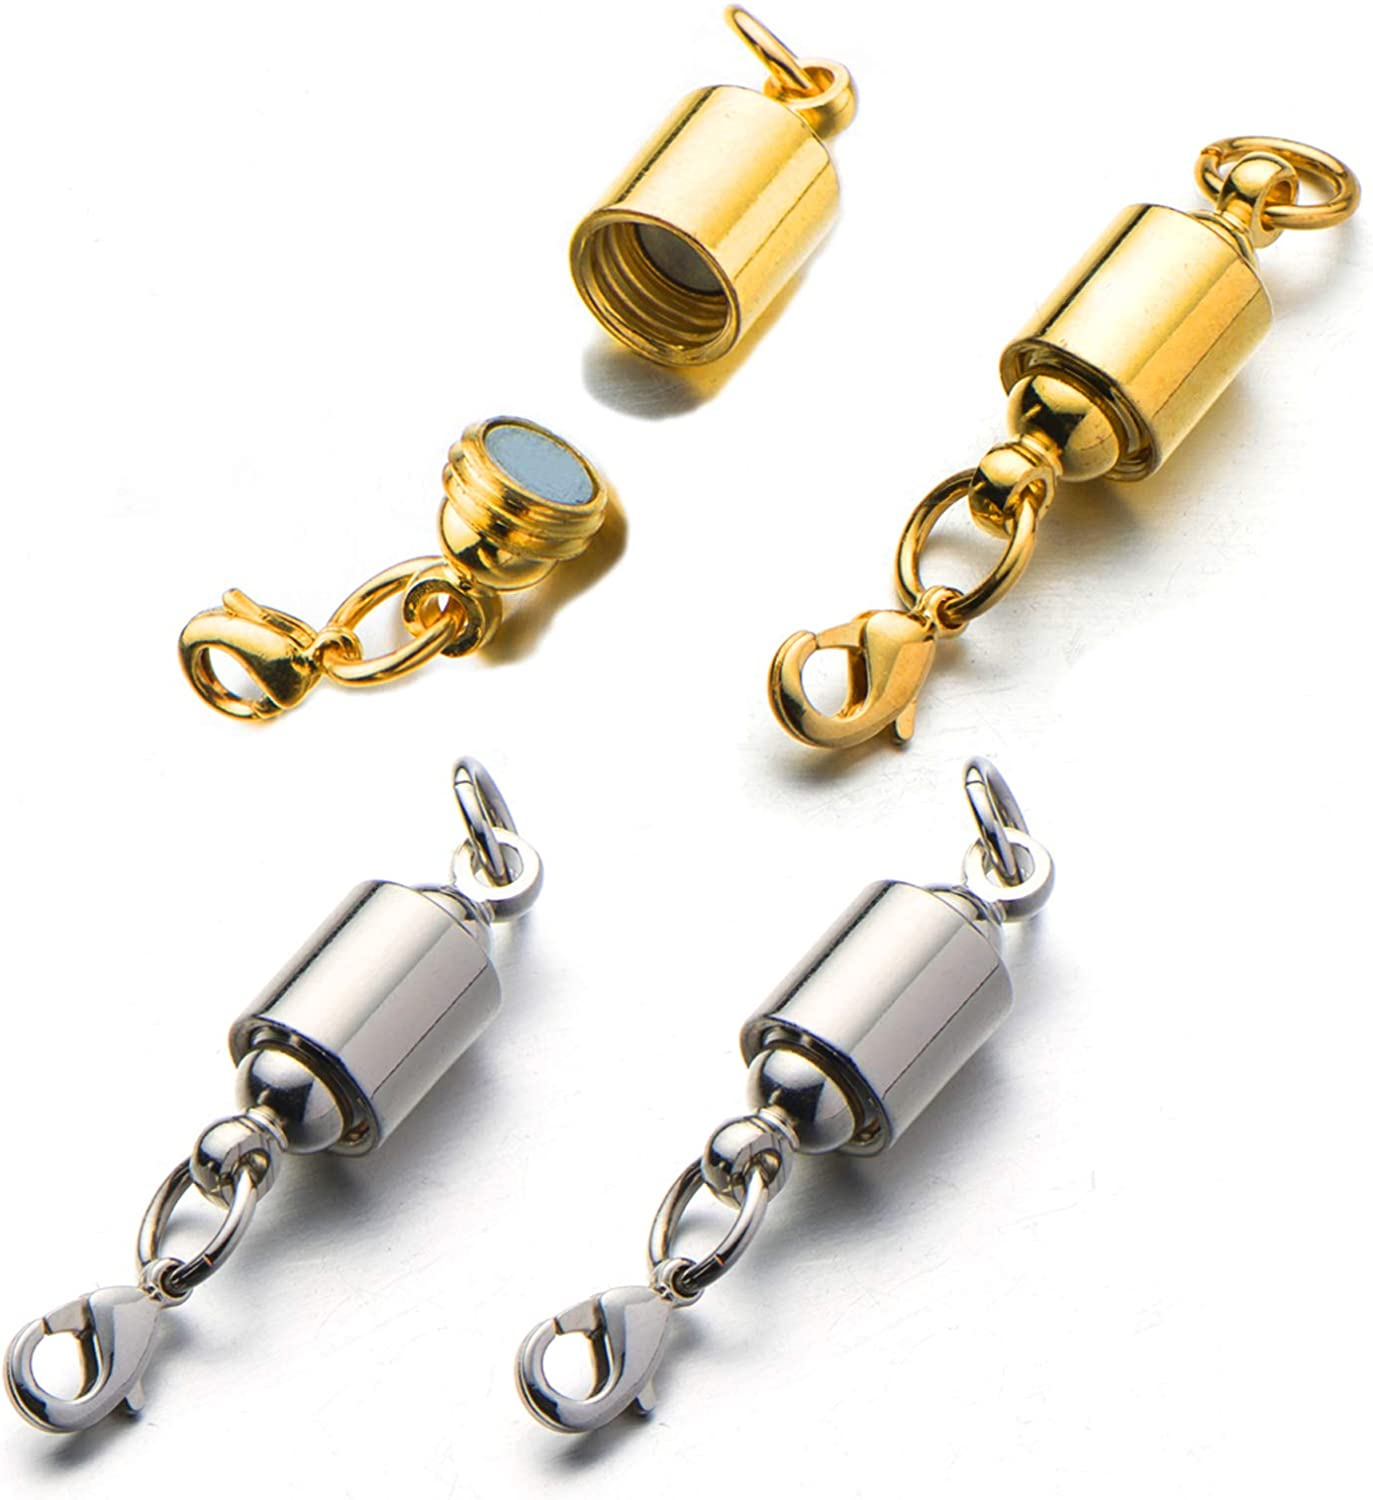 Zpsolution Magnetic Jewelry Clasps for Necklace Easy-to-use Screw- Bracelet Challenge the lowest price of Japan ☆